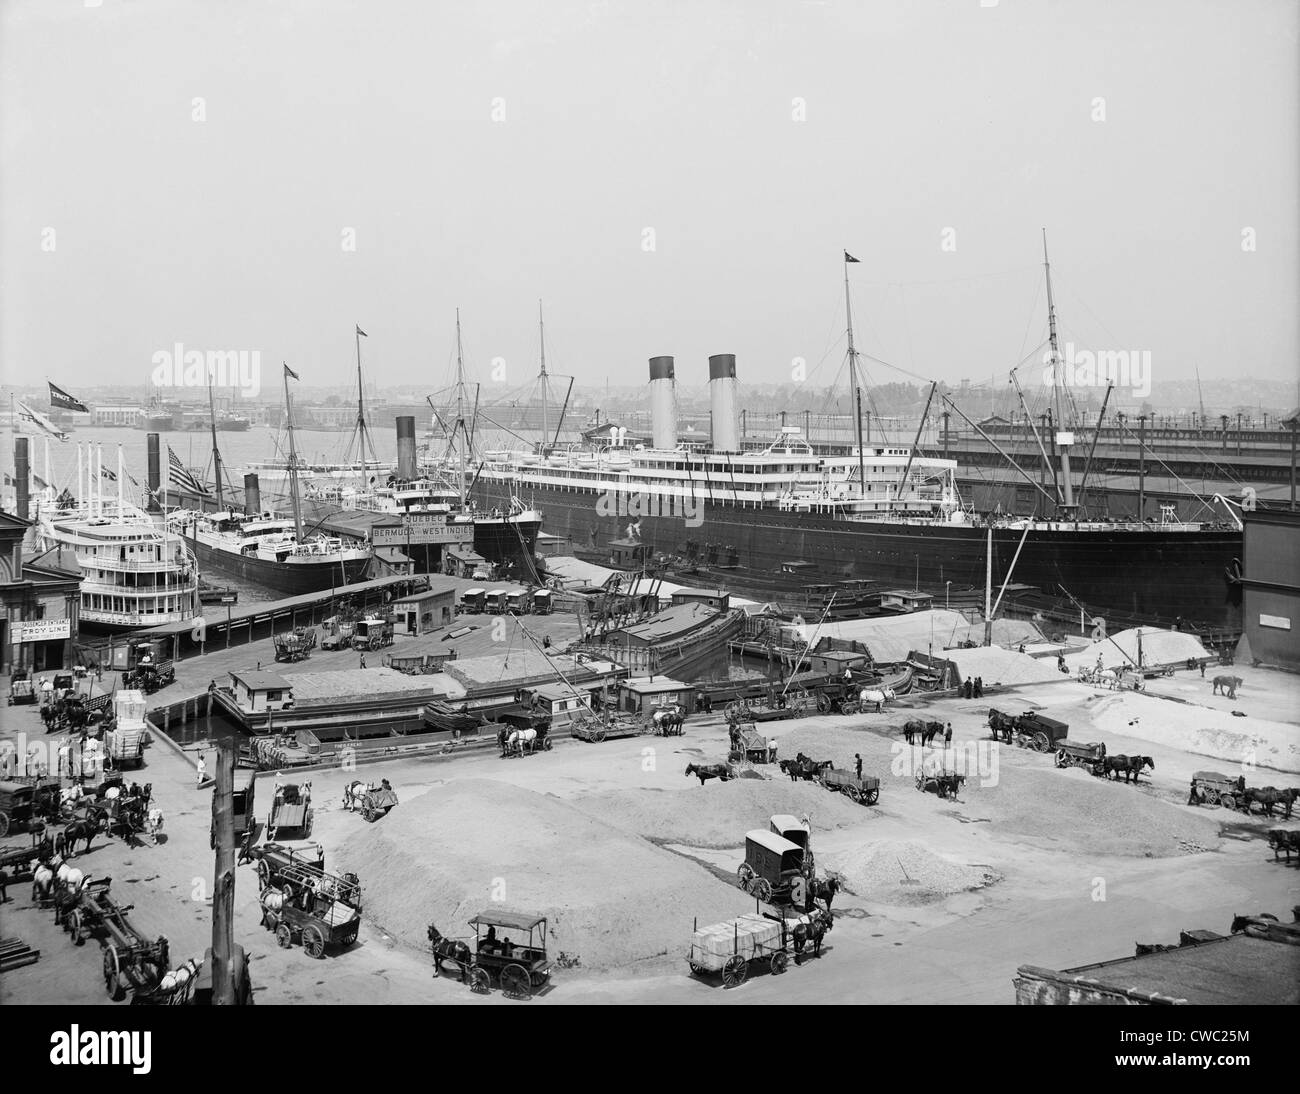 The Ocean Liner BALTIC moored at the White Star Line piers New York ca. 1905. LC-D4-10911 C - Stock Image